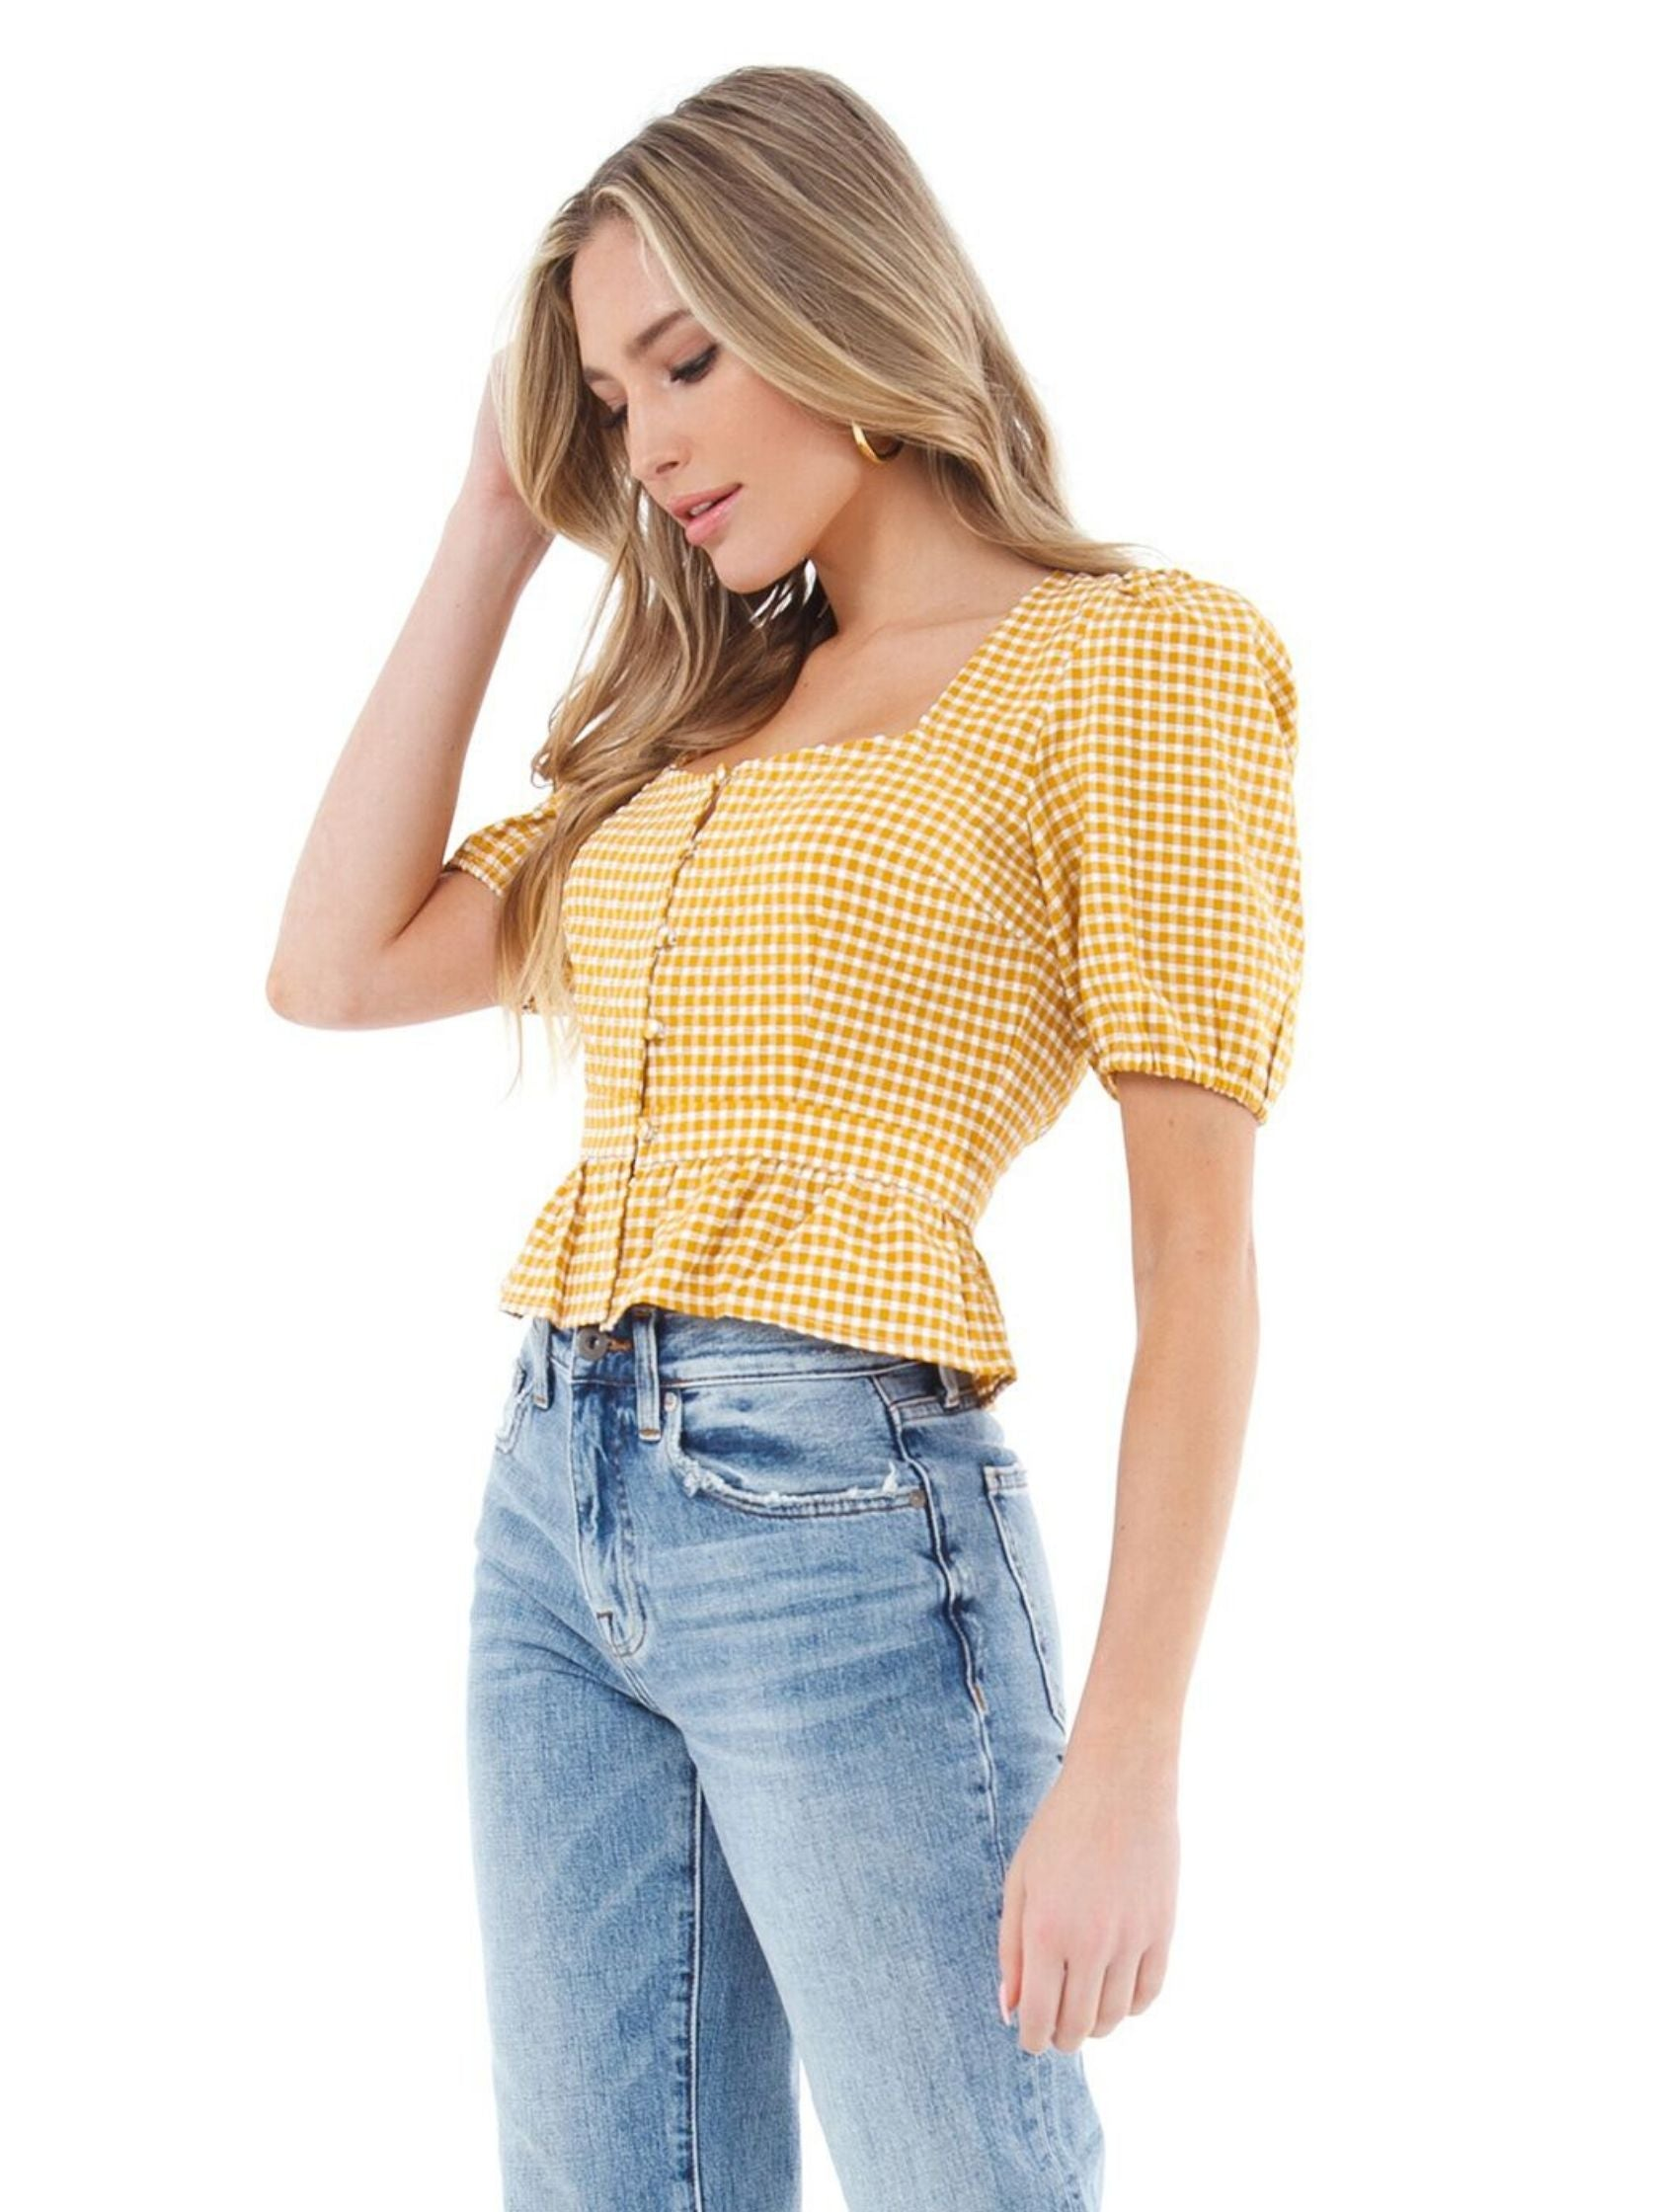 Women wearing a top rental from BB Dakota called Gingham Seersucker Top